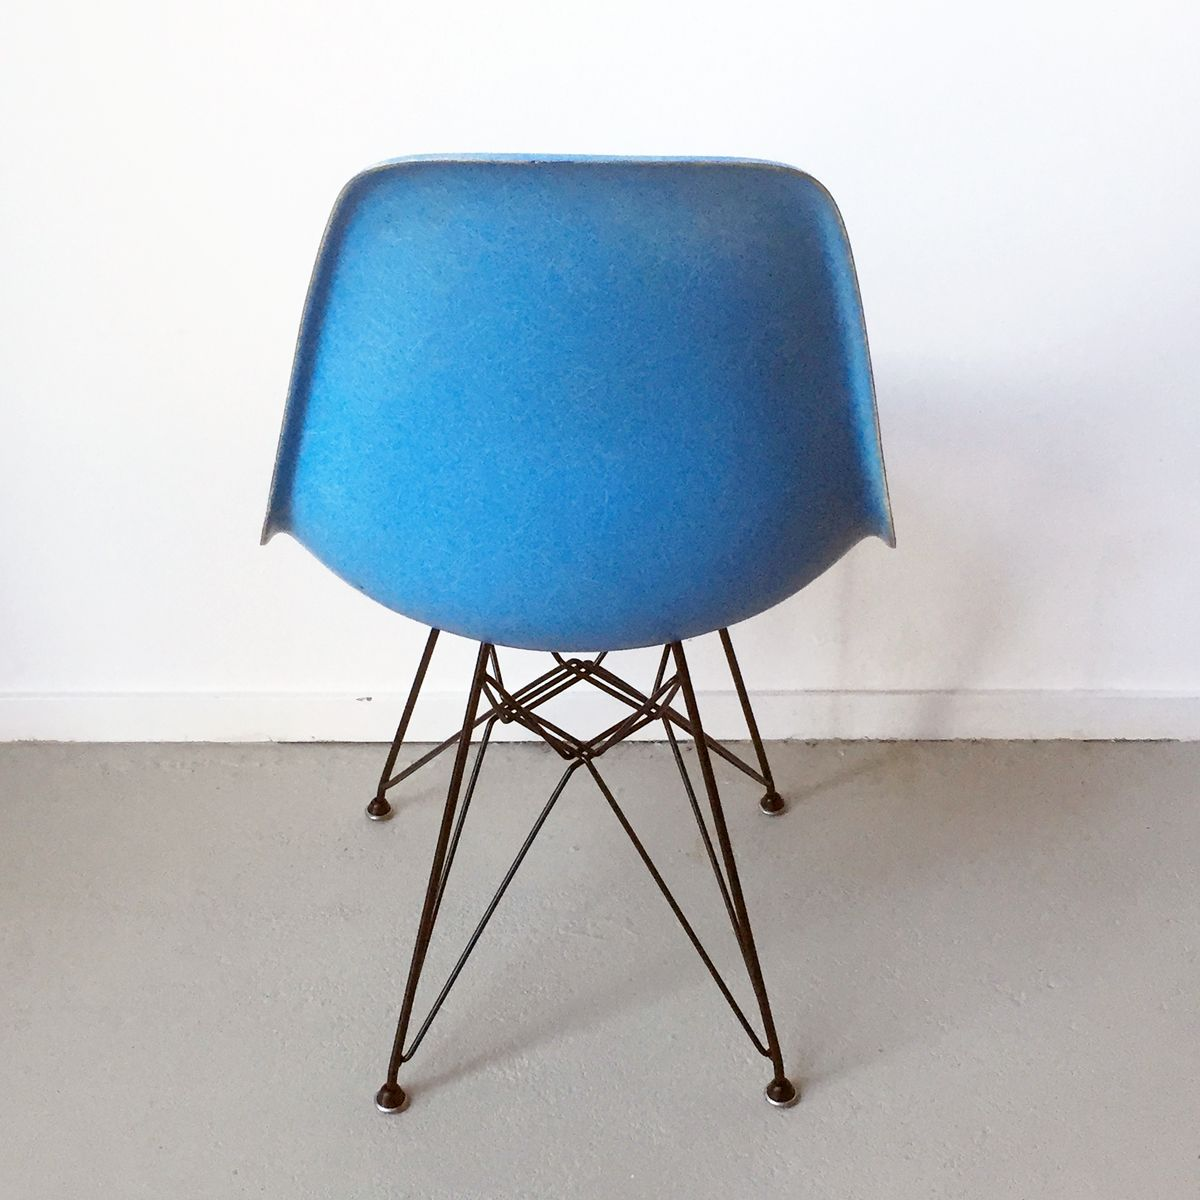 DSW Chair In Turqouise By Charles And Ray Eames For Herman Miller 1971 For S